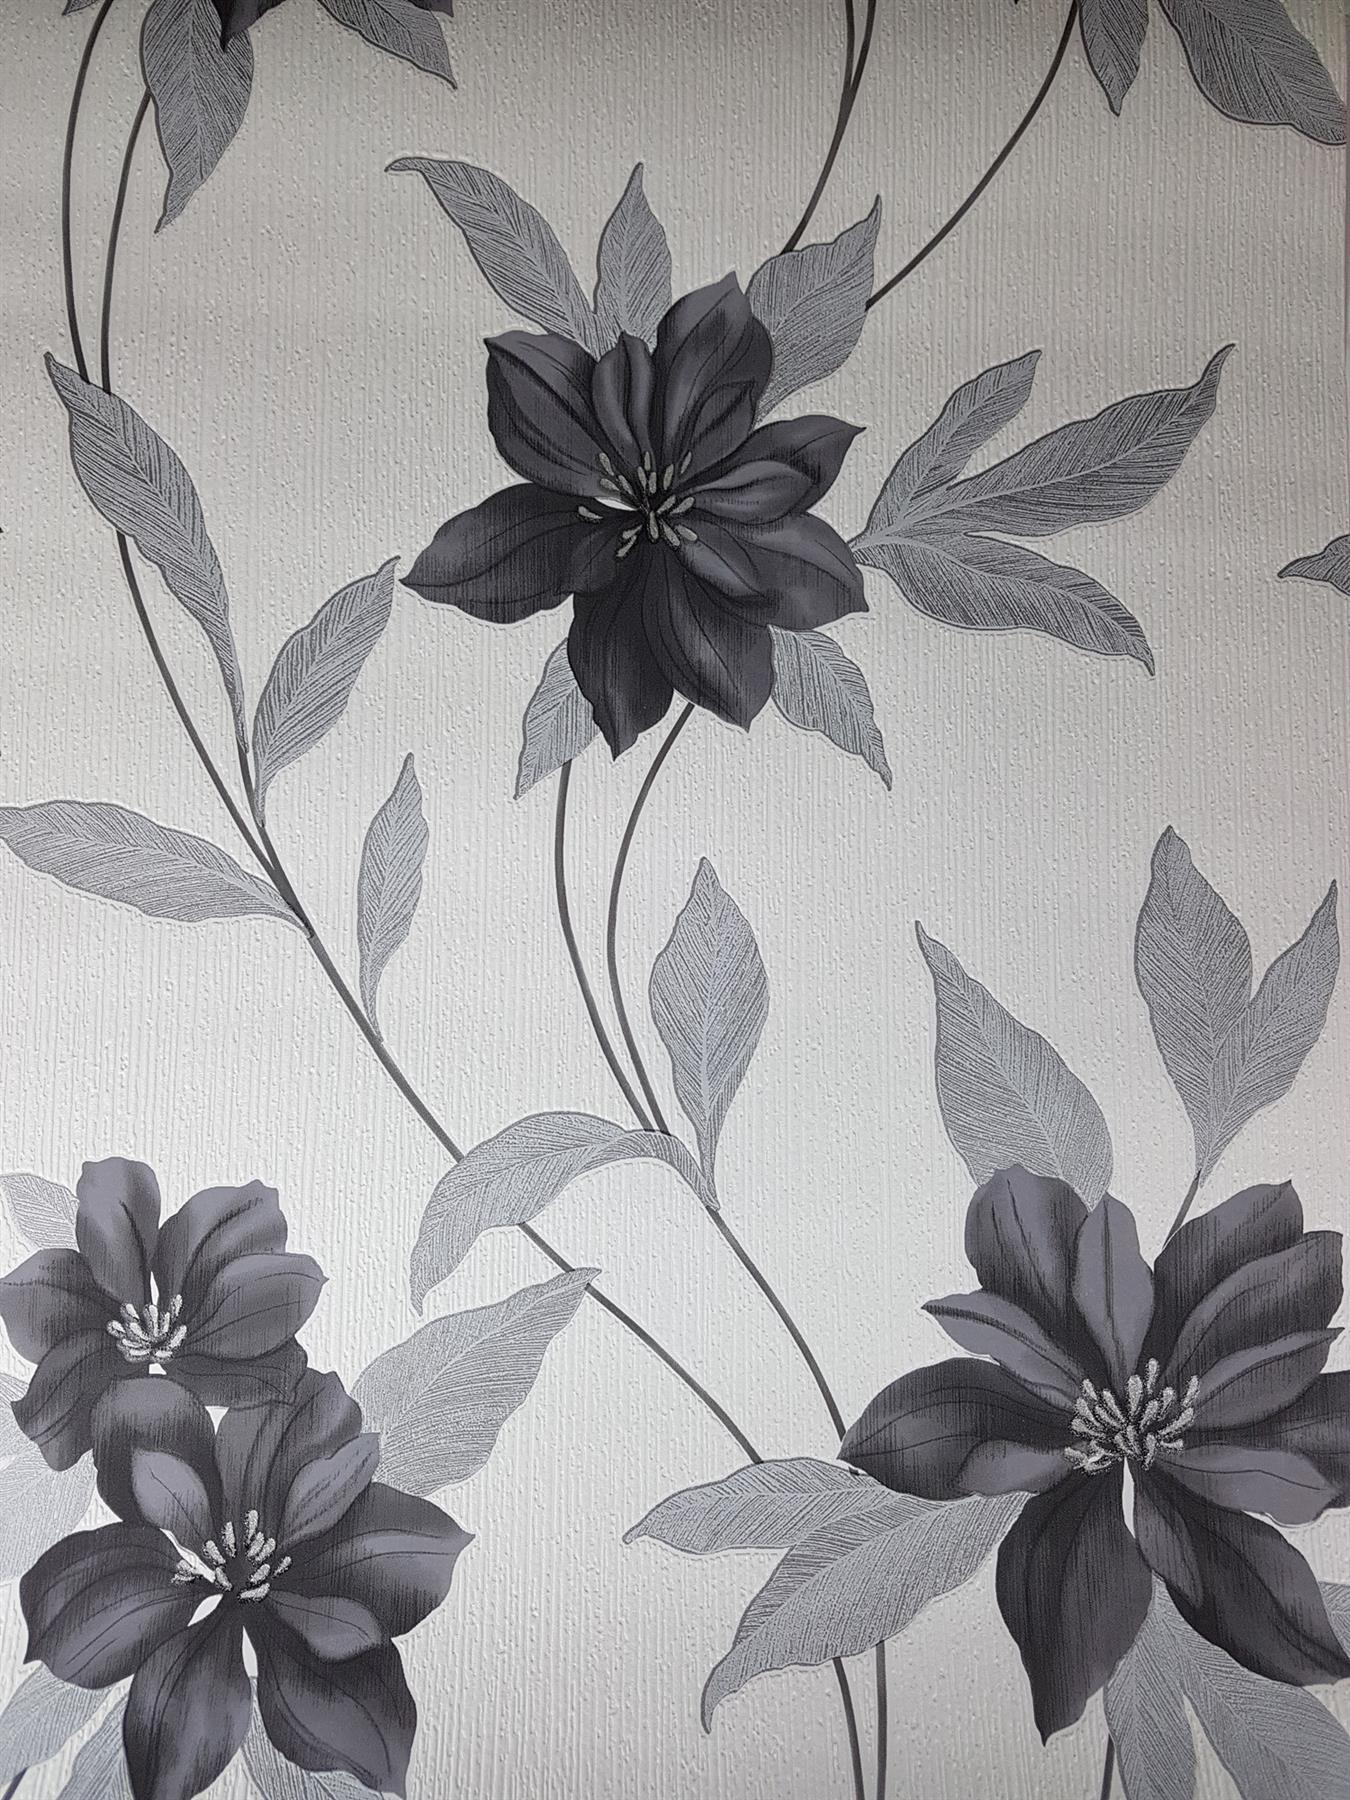 Details About Spring Black Flower Glitter Wallpaper Floral Black White Textured Vinyl Erismann